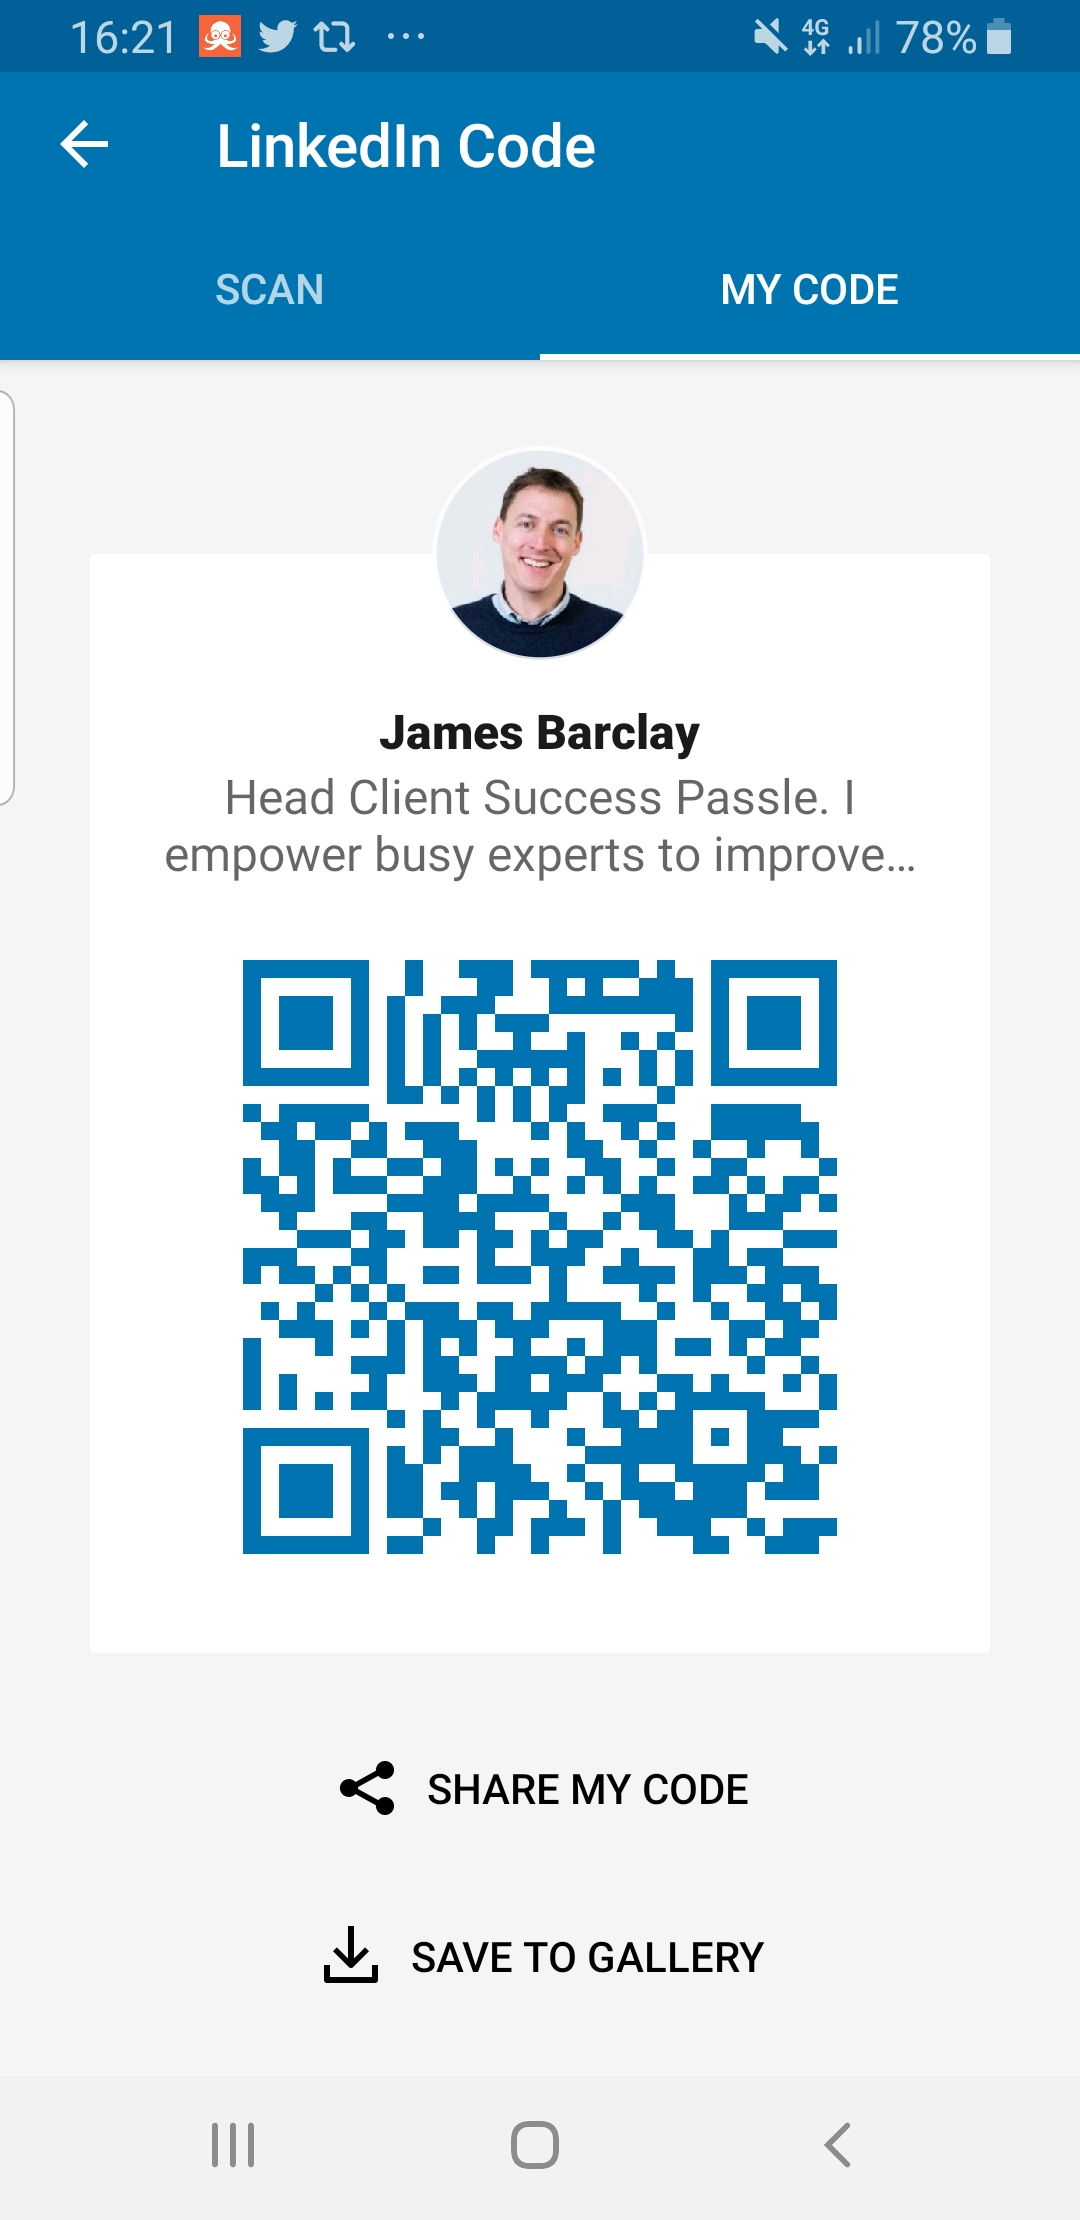 LinkedIn QR code makes it easy to connect at events, James Barclay